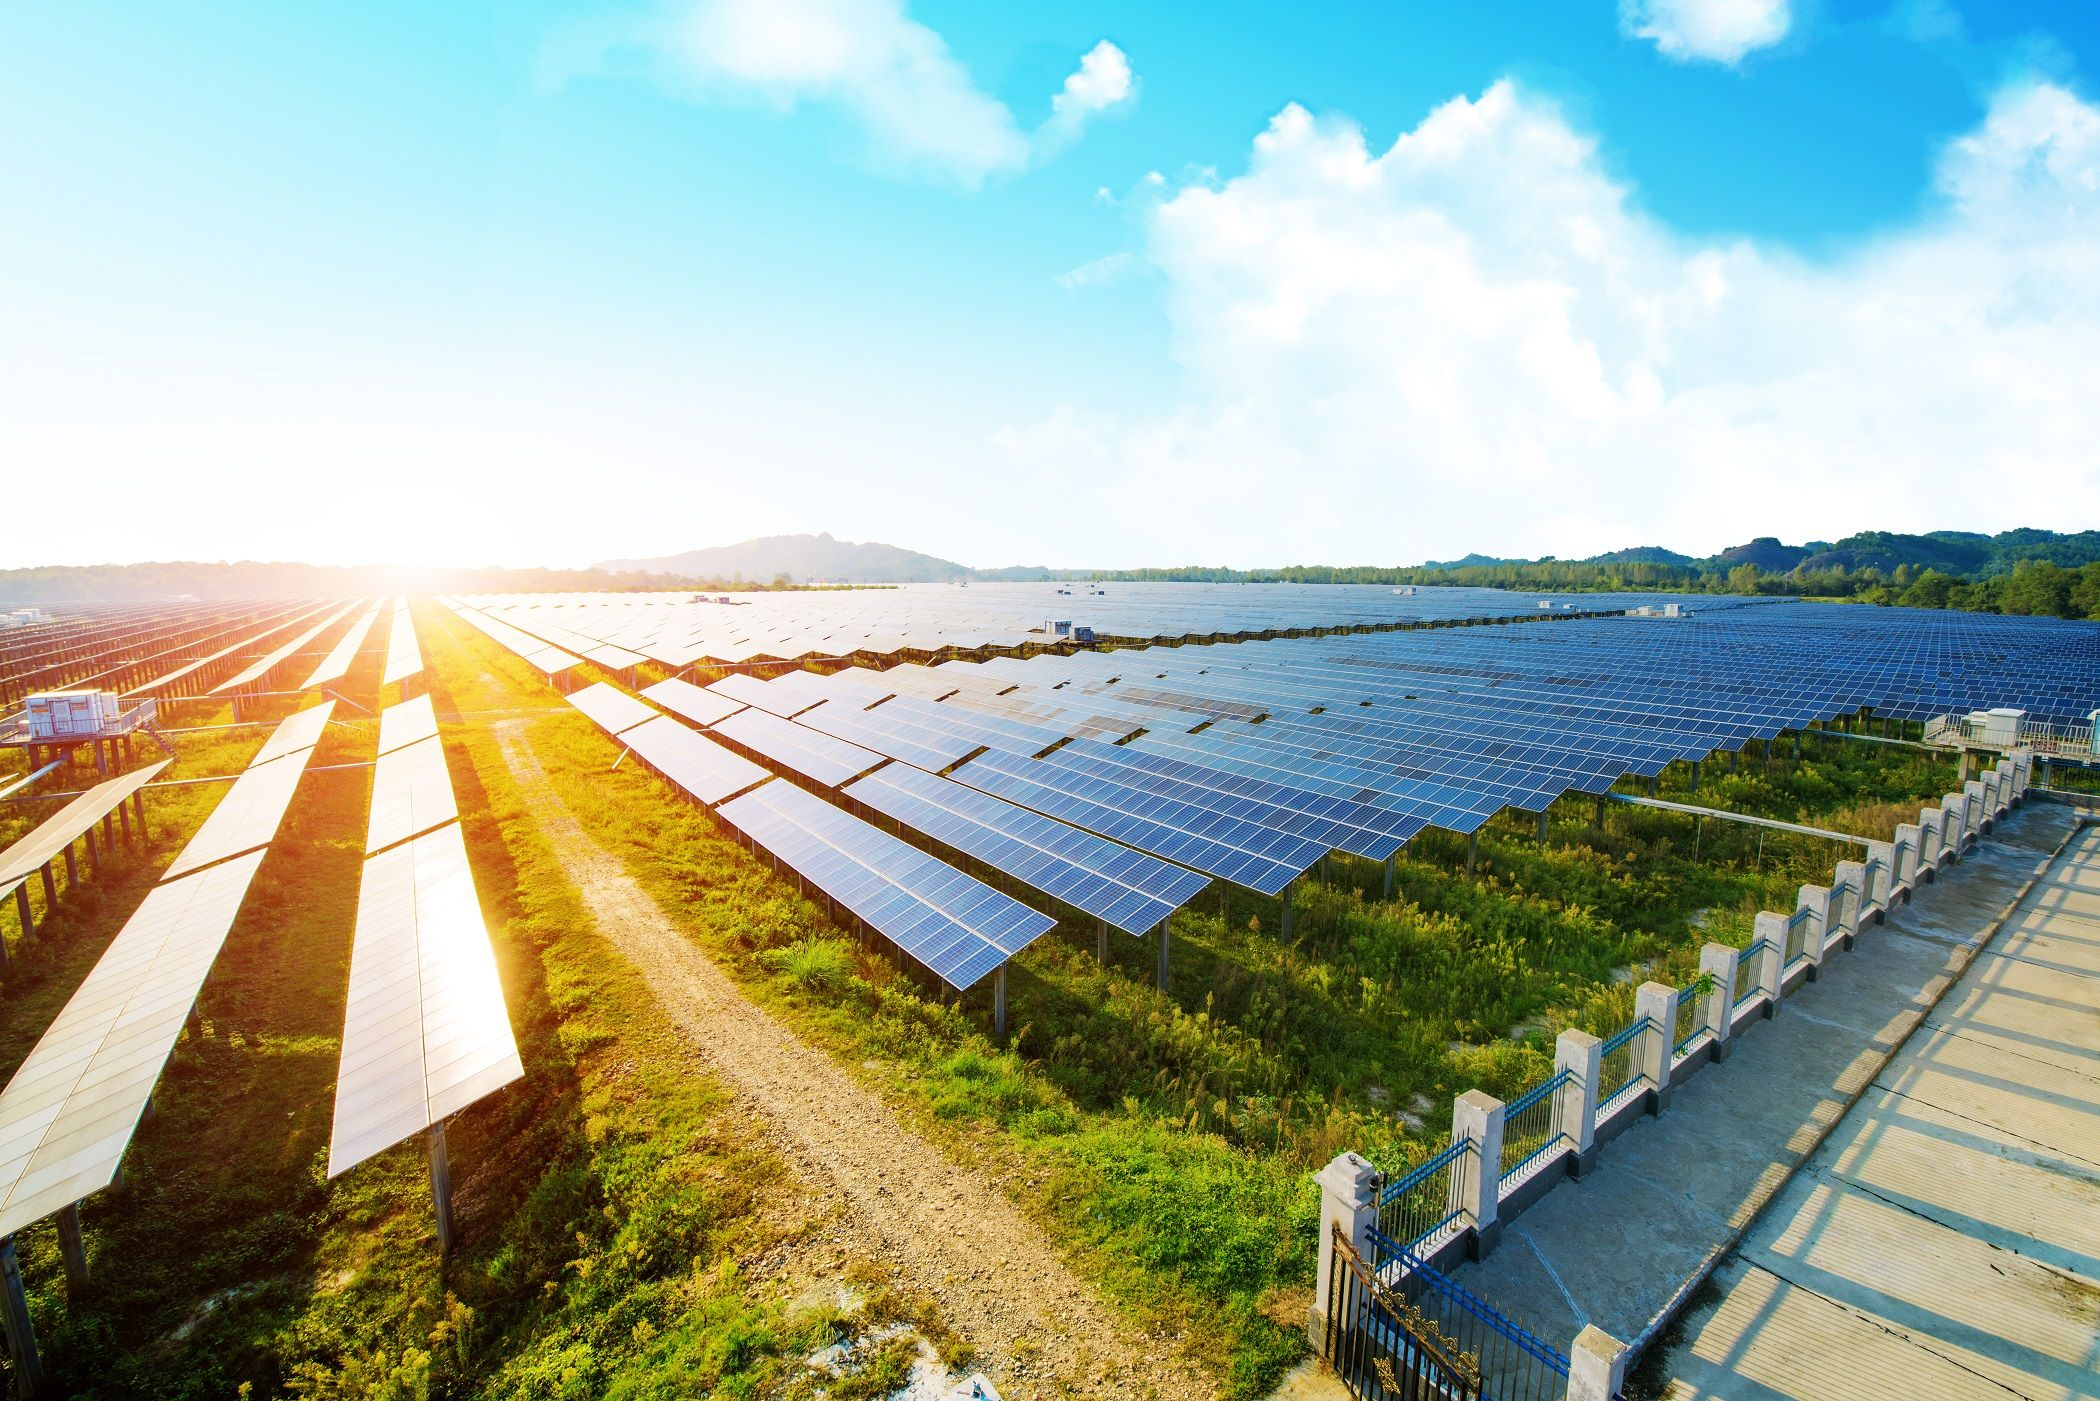 Spain is becoming a new global hot spot for corporate renewables deals.